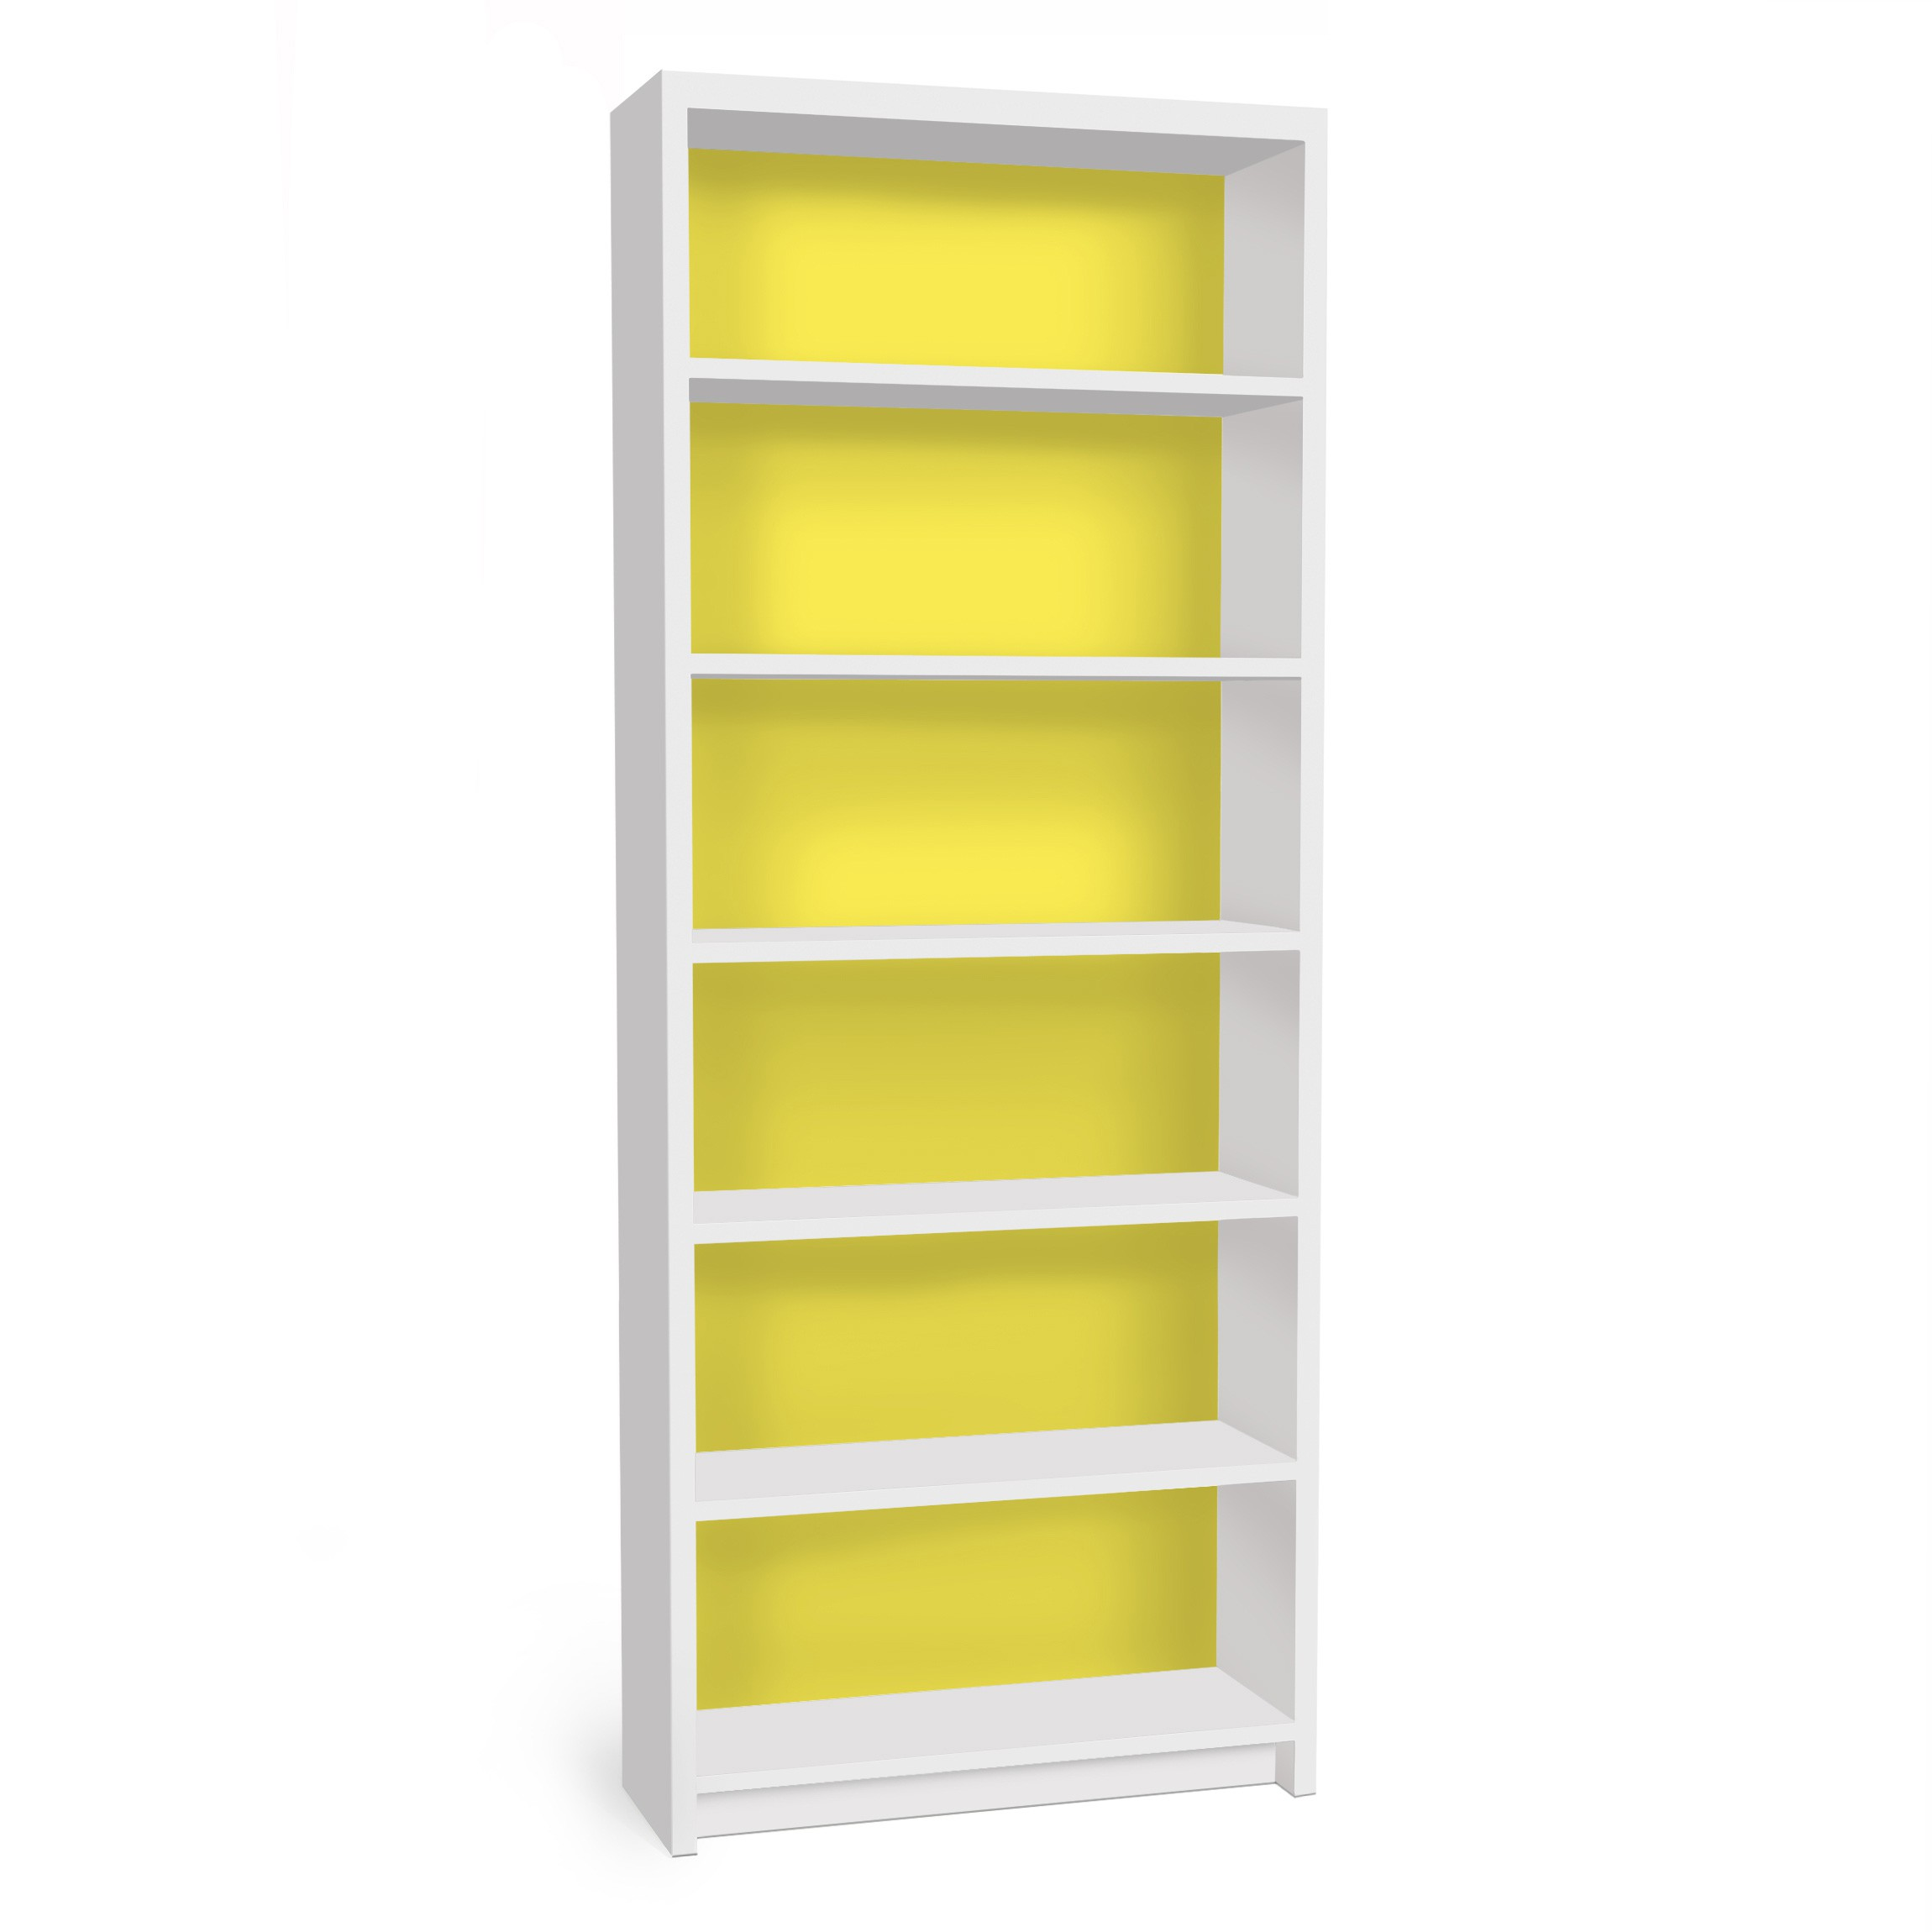 m belfolie f r ikea billy regal klebefolie colour lemon yellow. Black Bedroom Furniture Sets. Home Design Ideas